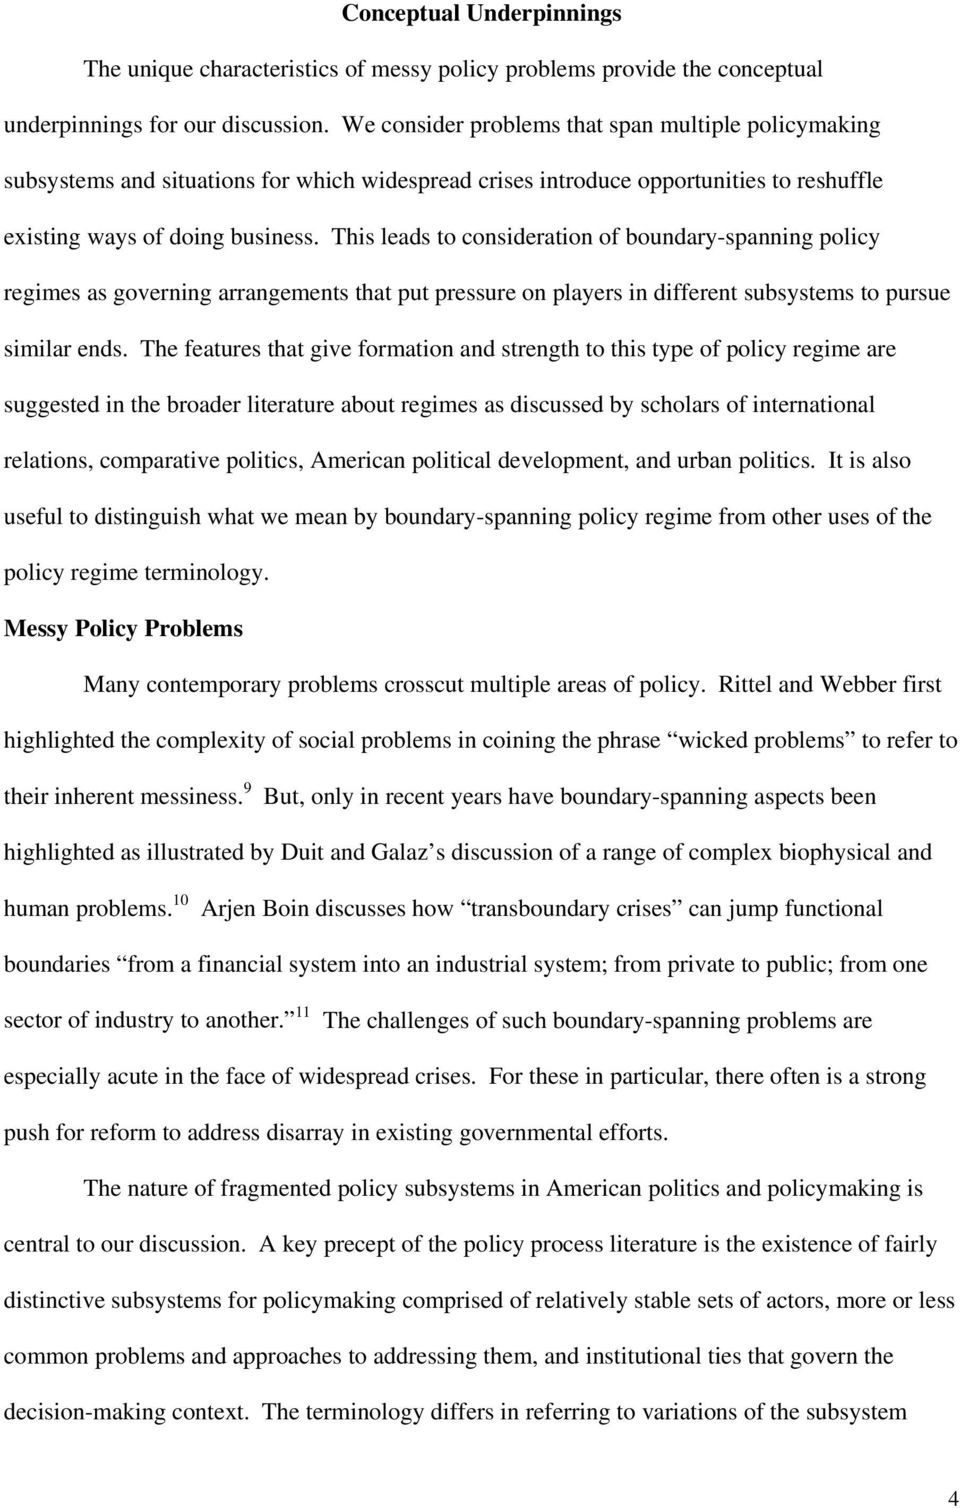 This leads to consideration of boundary-spanning policy regimes as governing arrangements that put pressure on players in different subsystems to pursue similar ends.